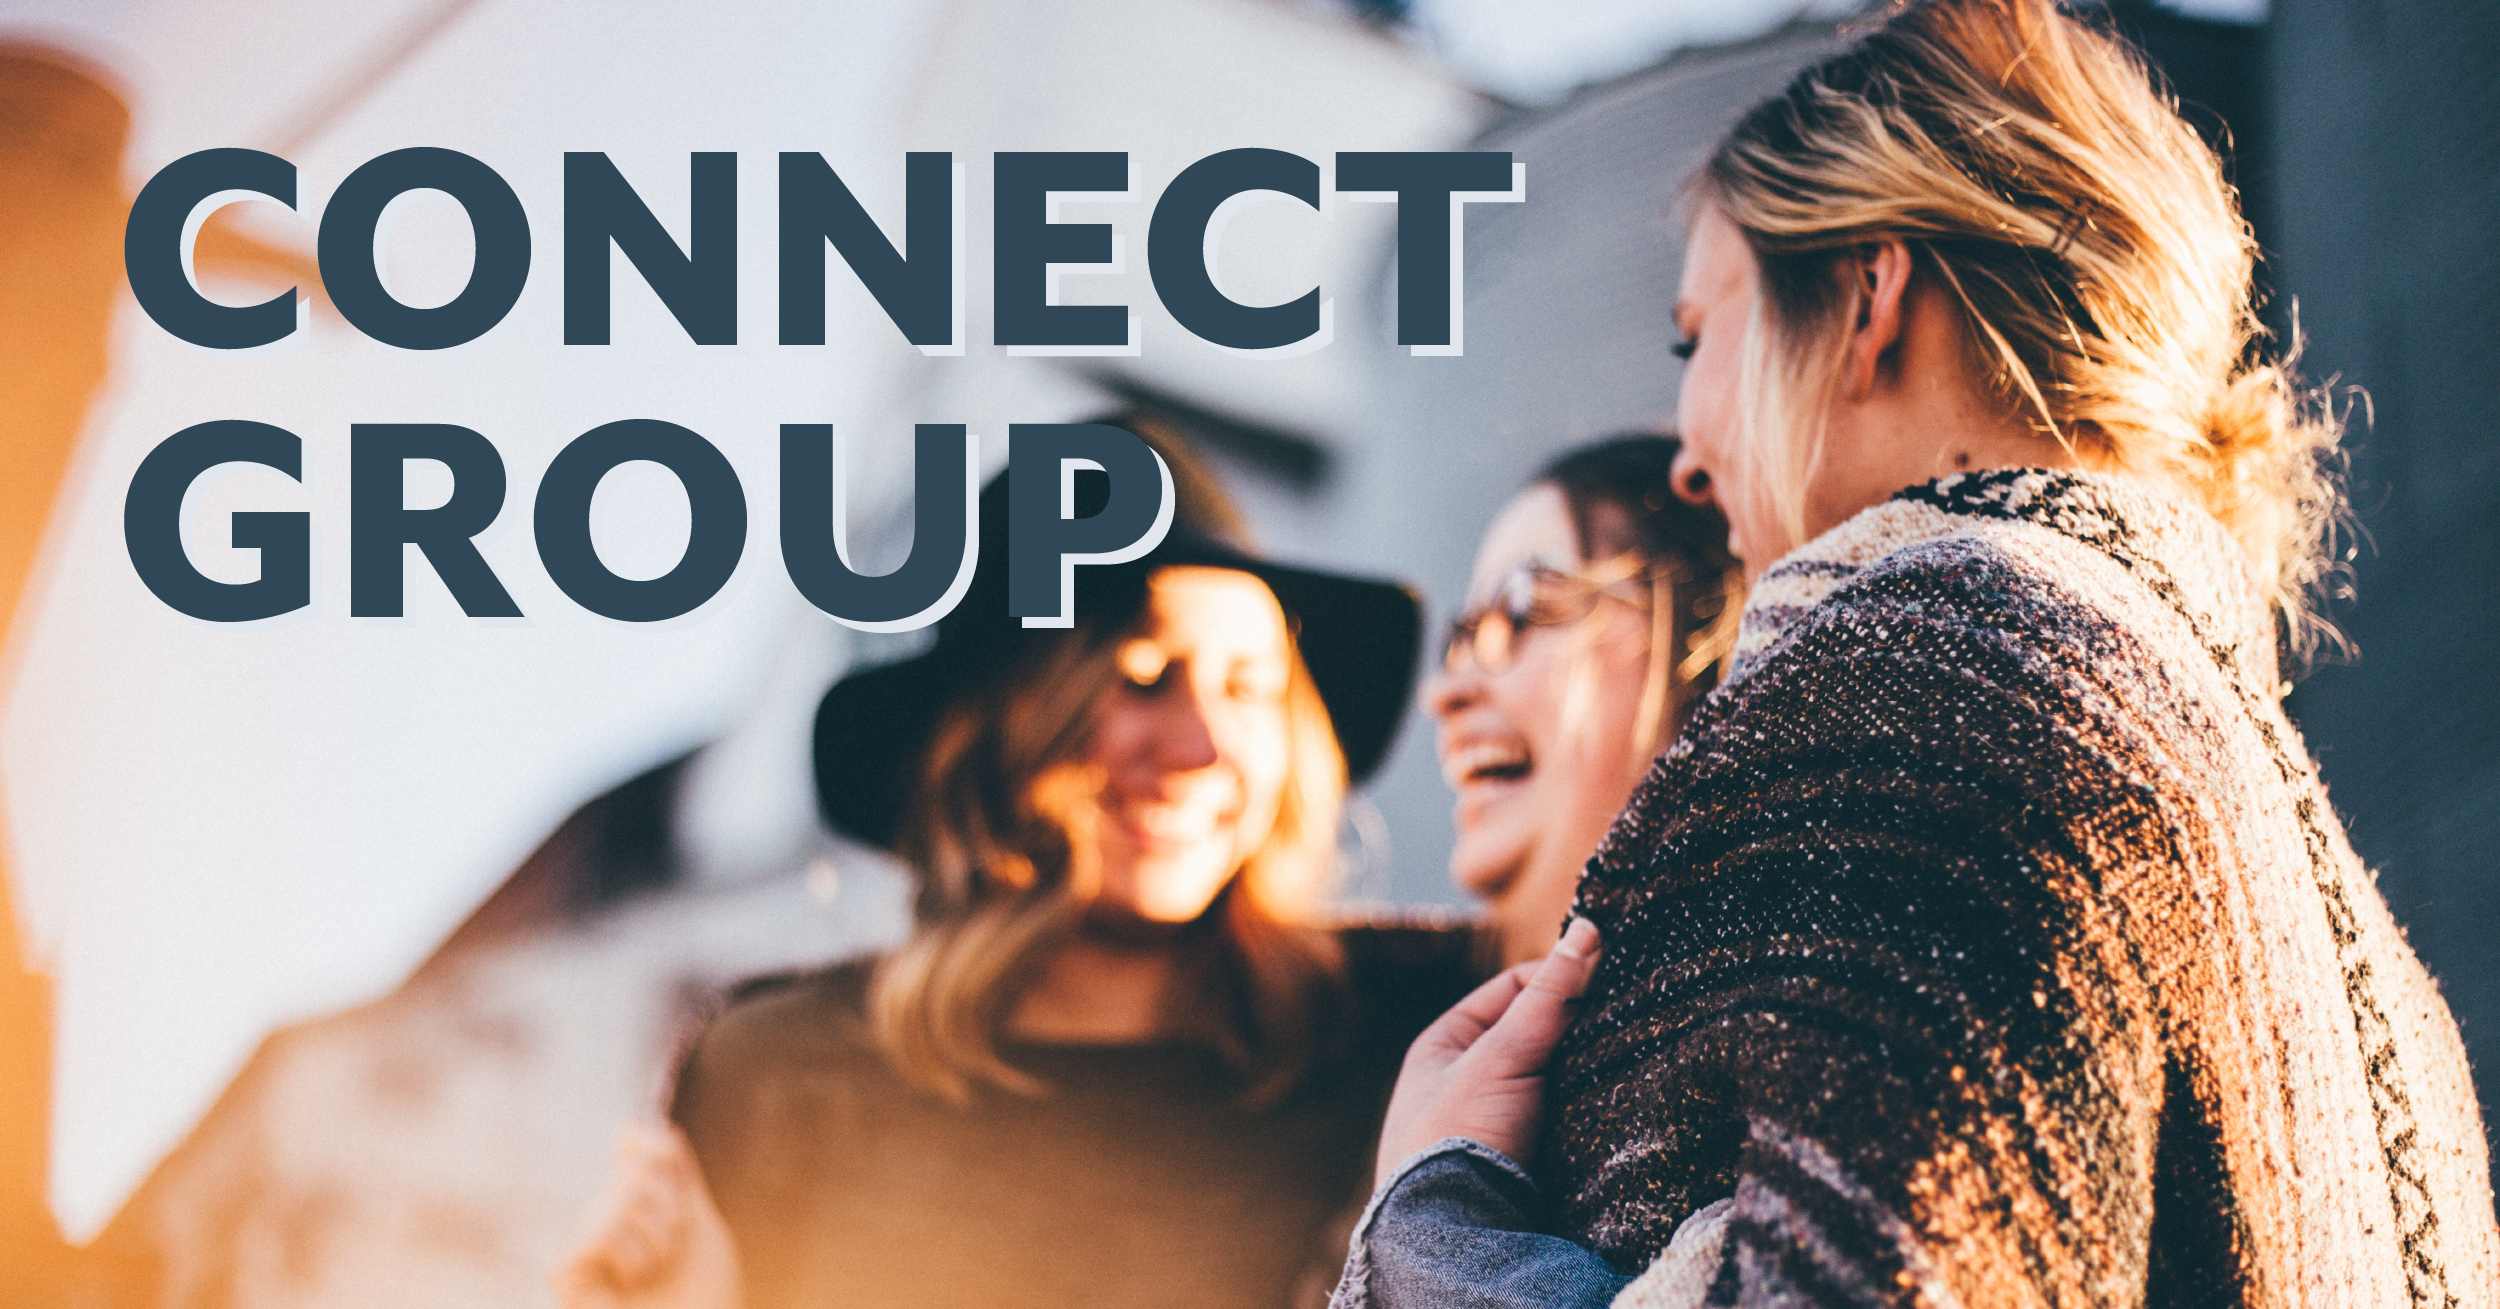 Find out more about how to get connected